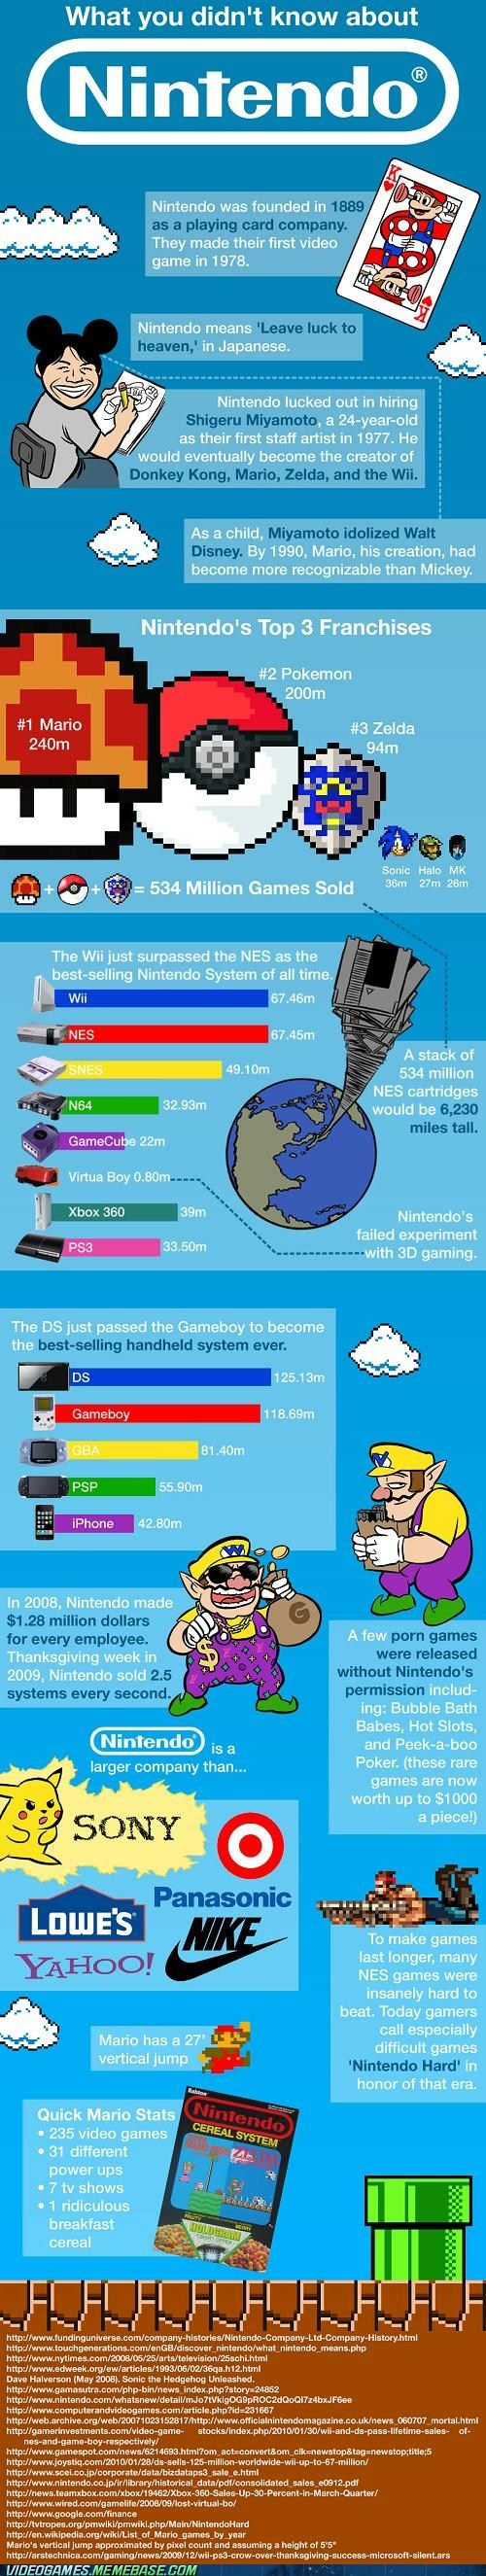 Facts About Nintendo